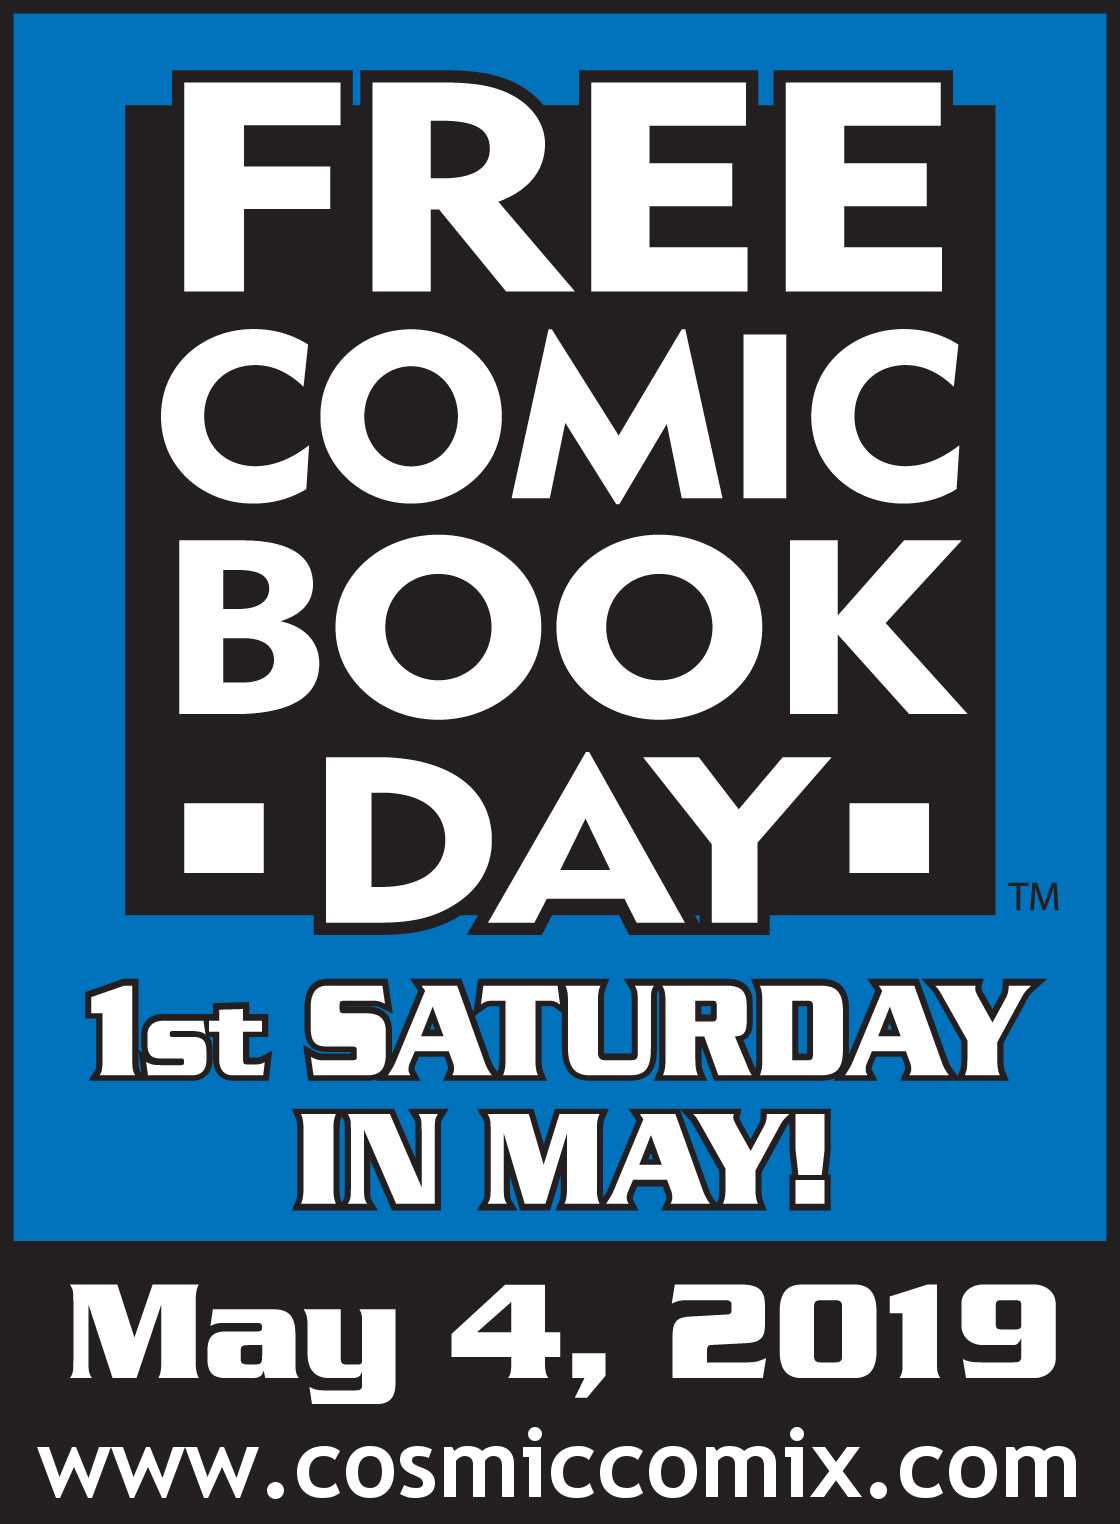 Free Comic Book Day! — Cosmic Comix & Toys